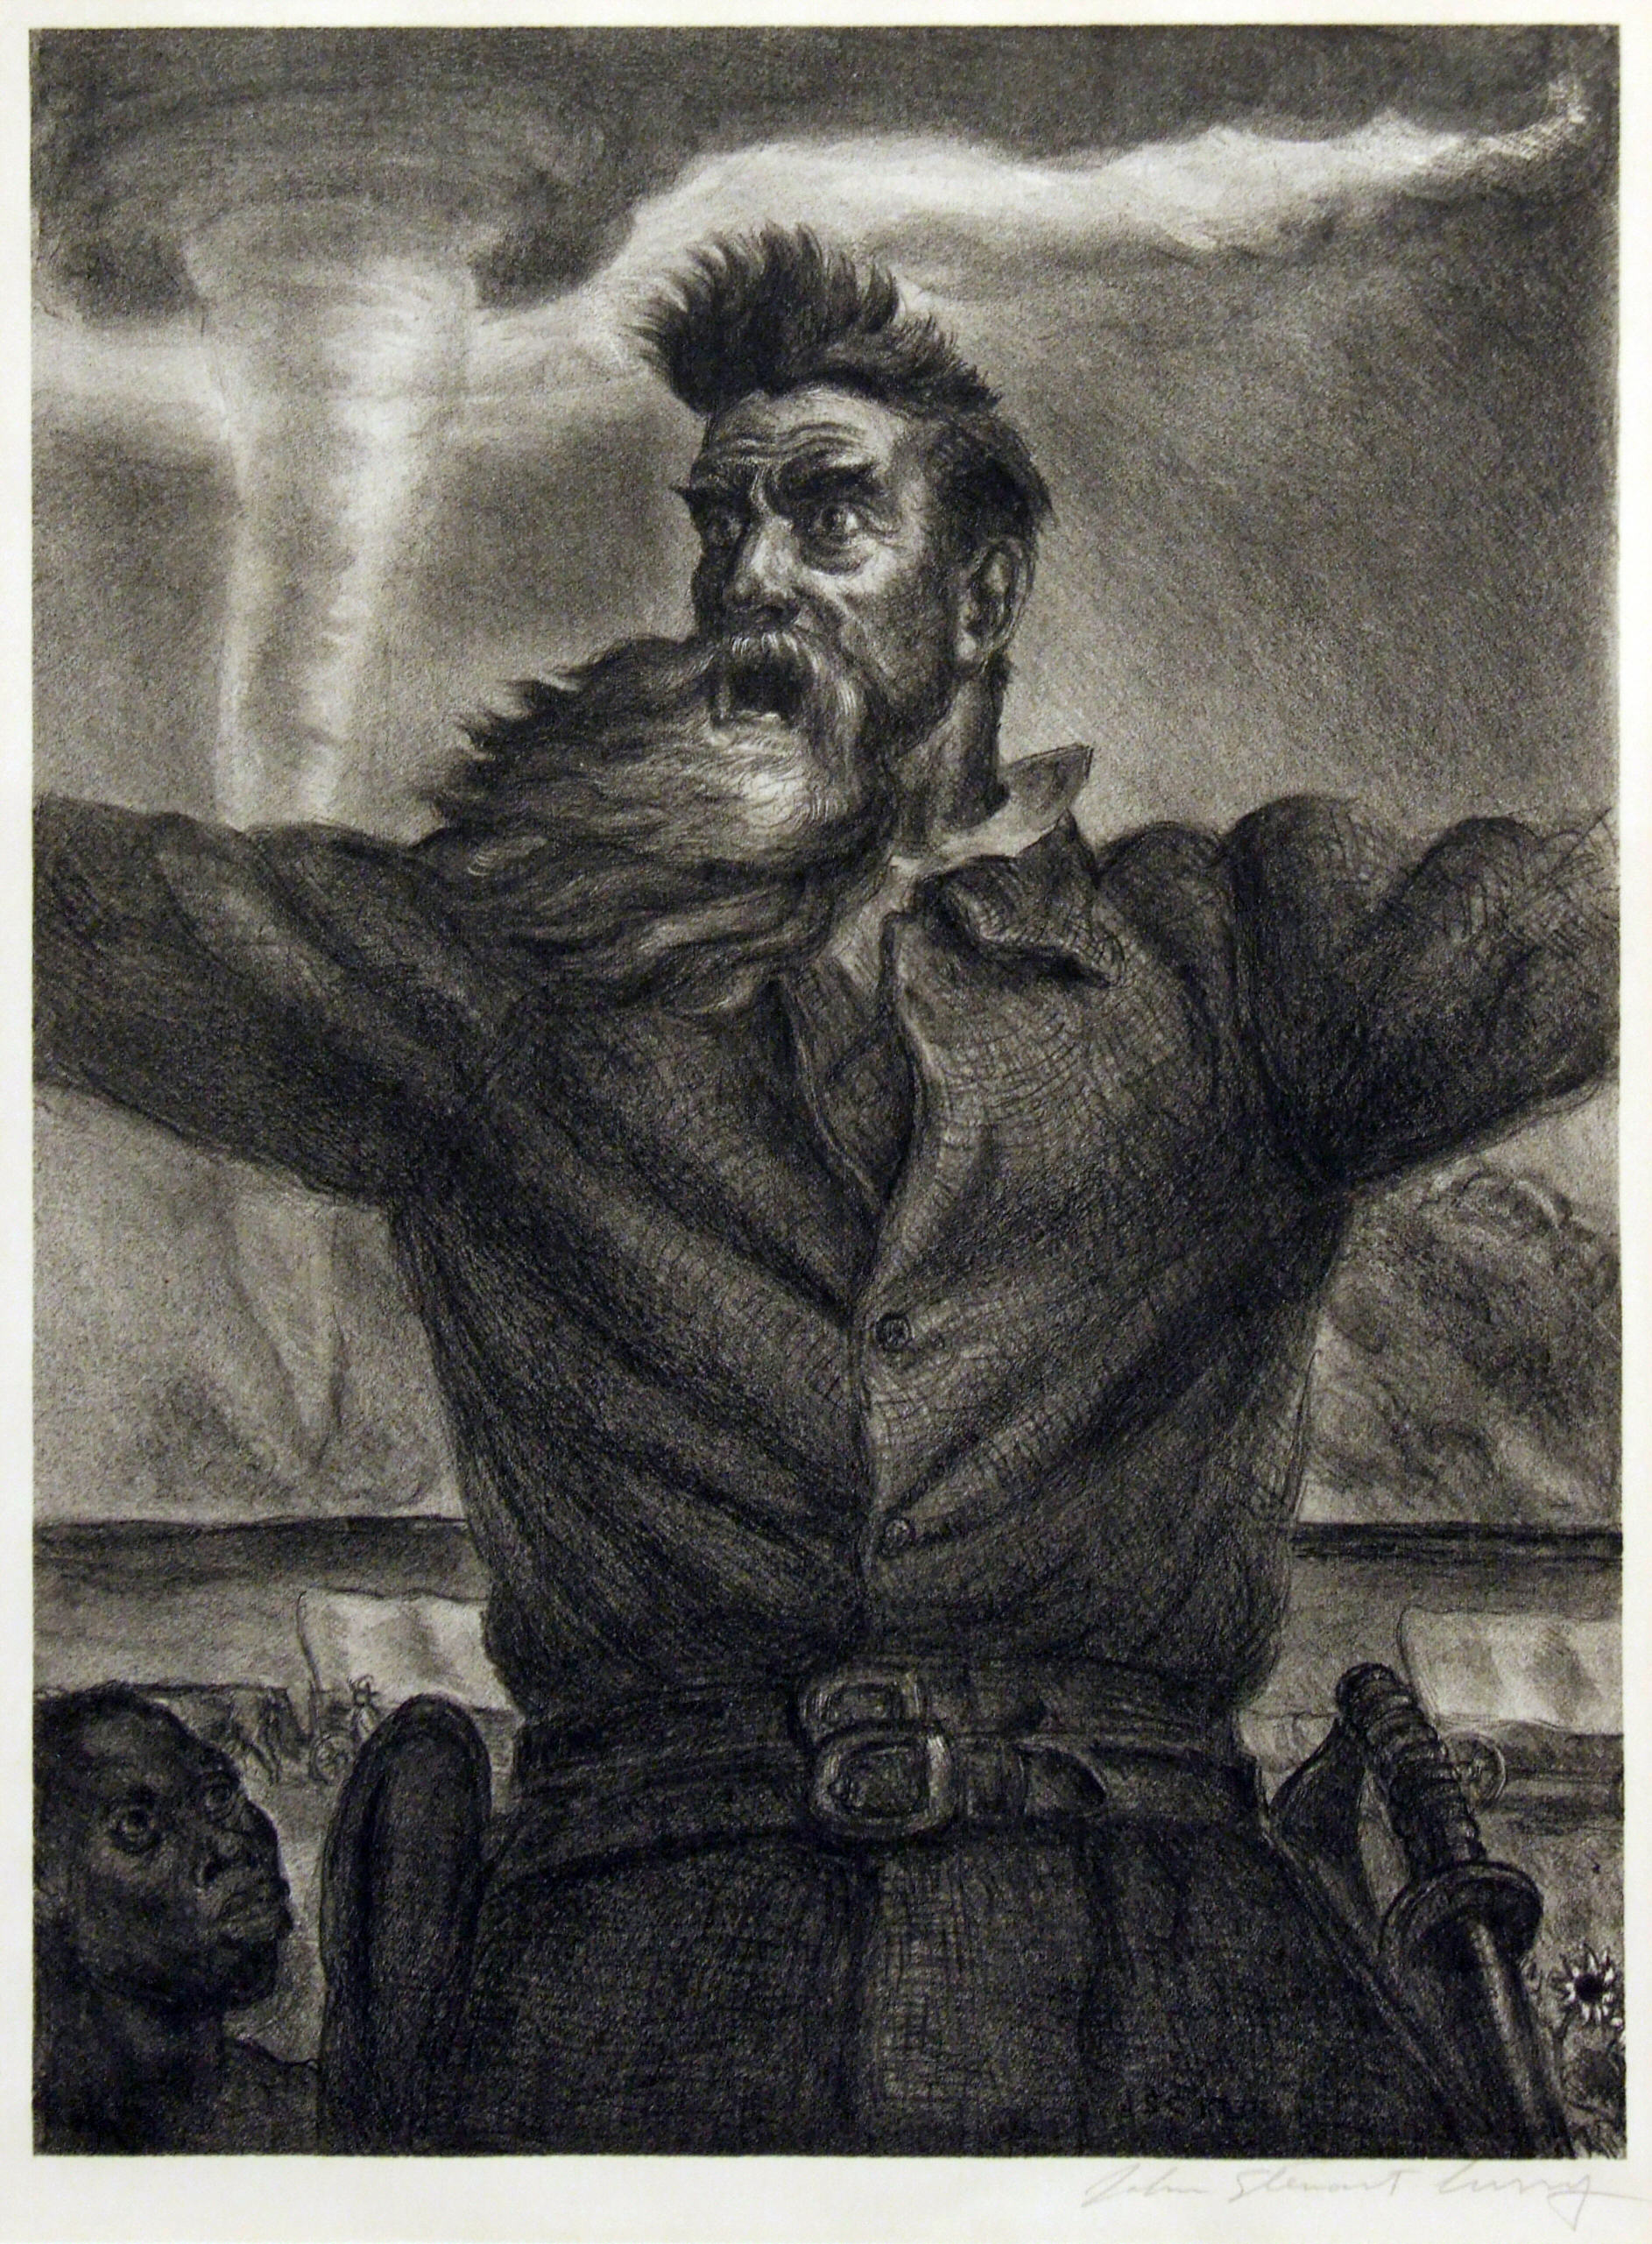 2005.005 | John Steuart Curry | JOHN BROWN | lithograph | 4-3/4 X 10-7/8"